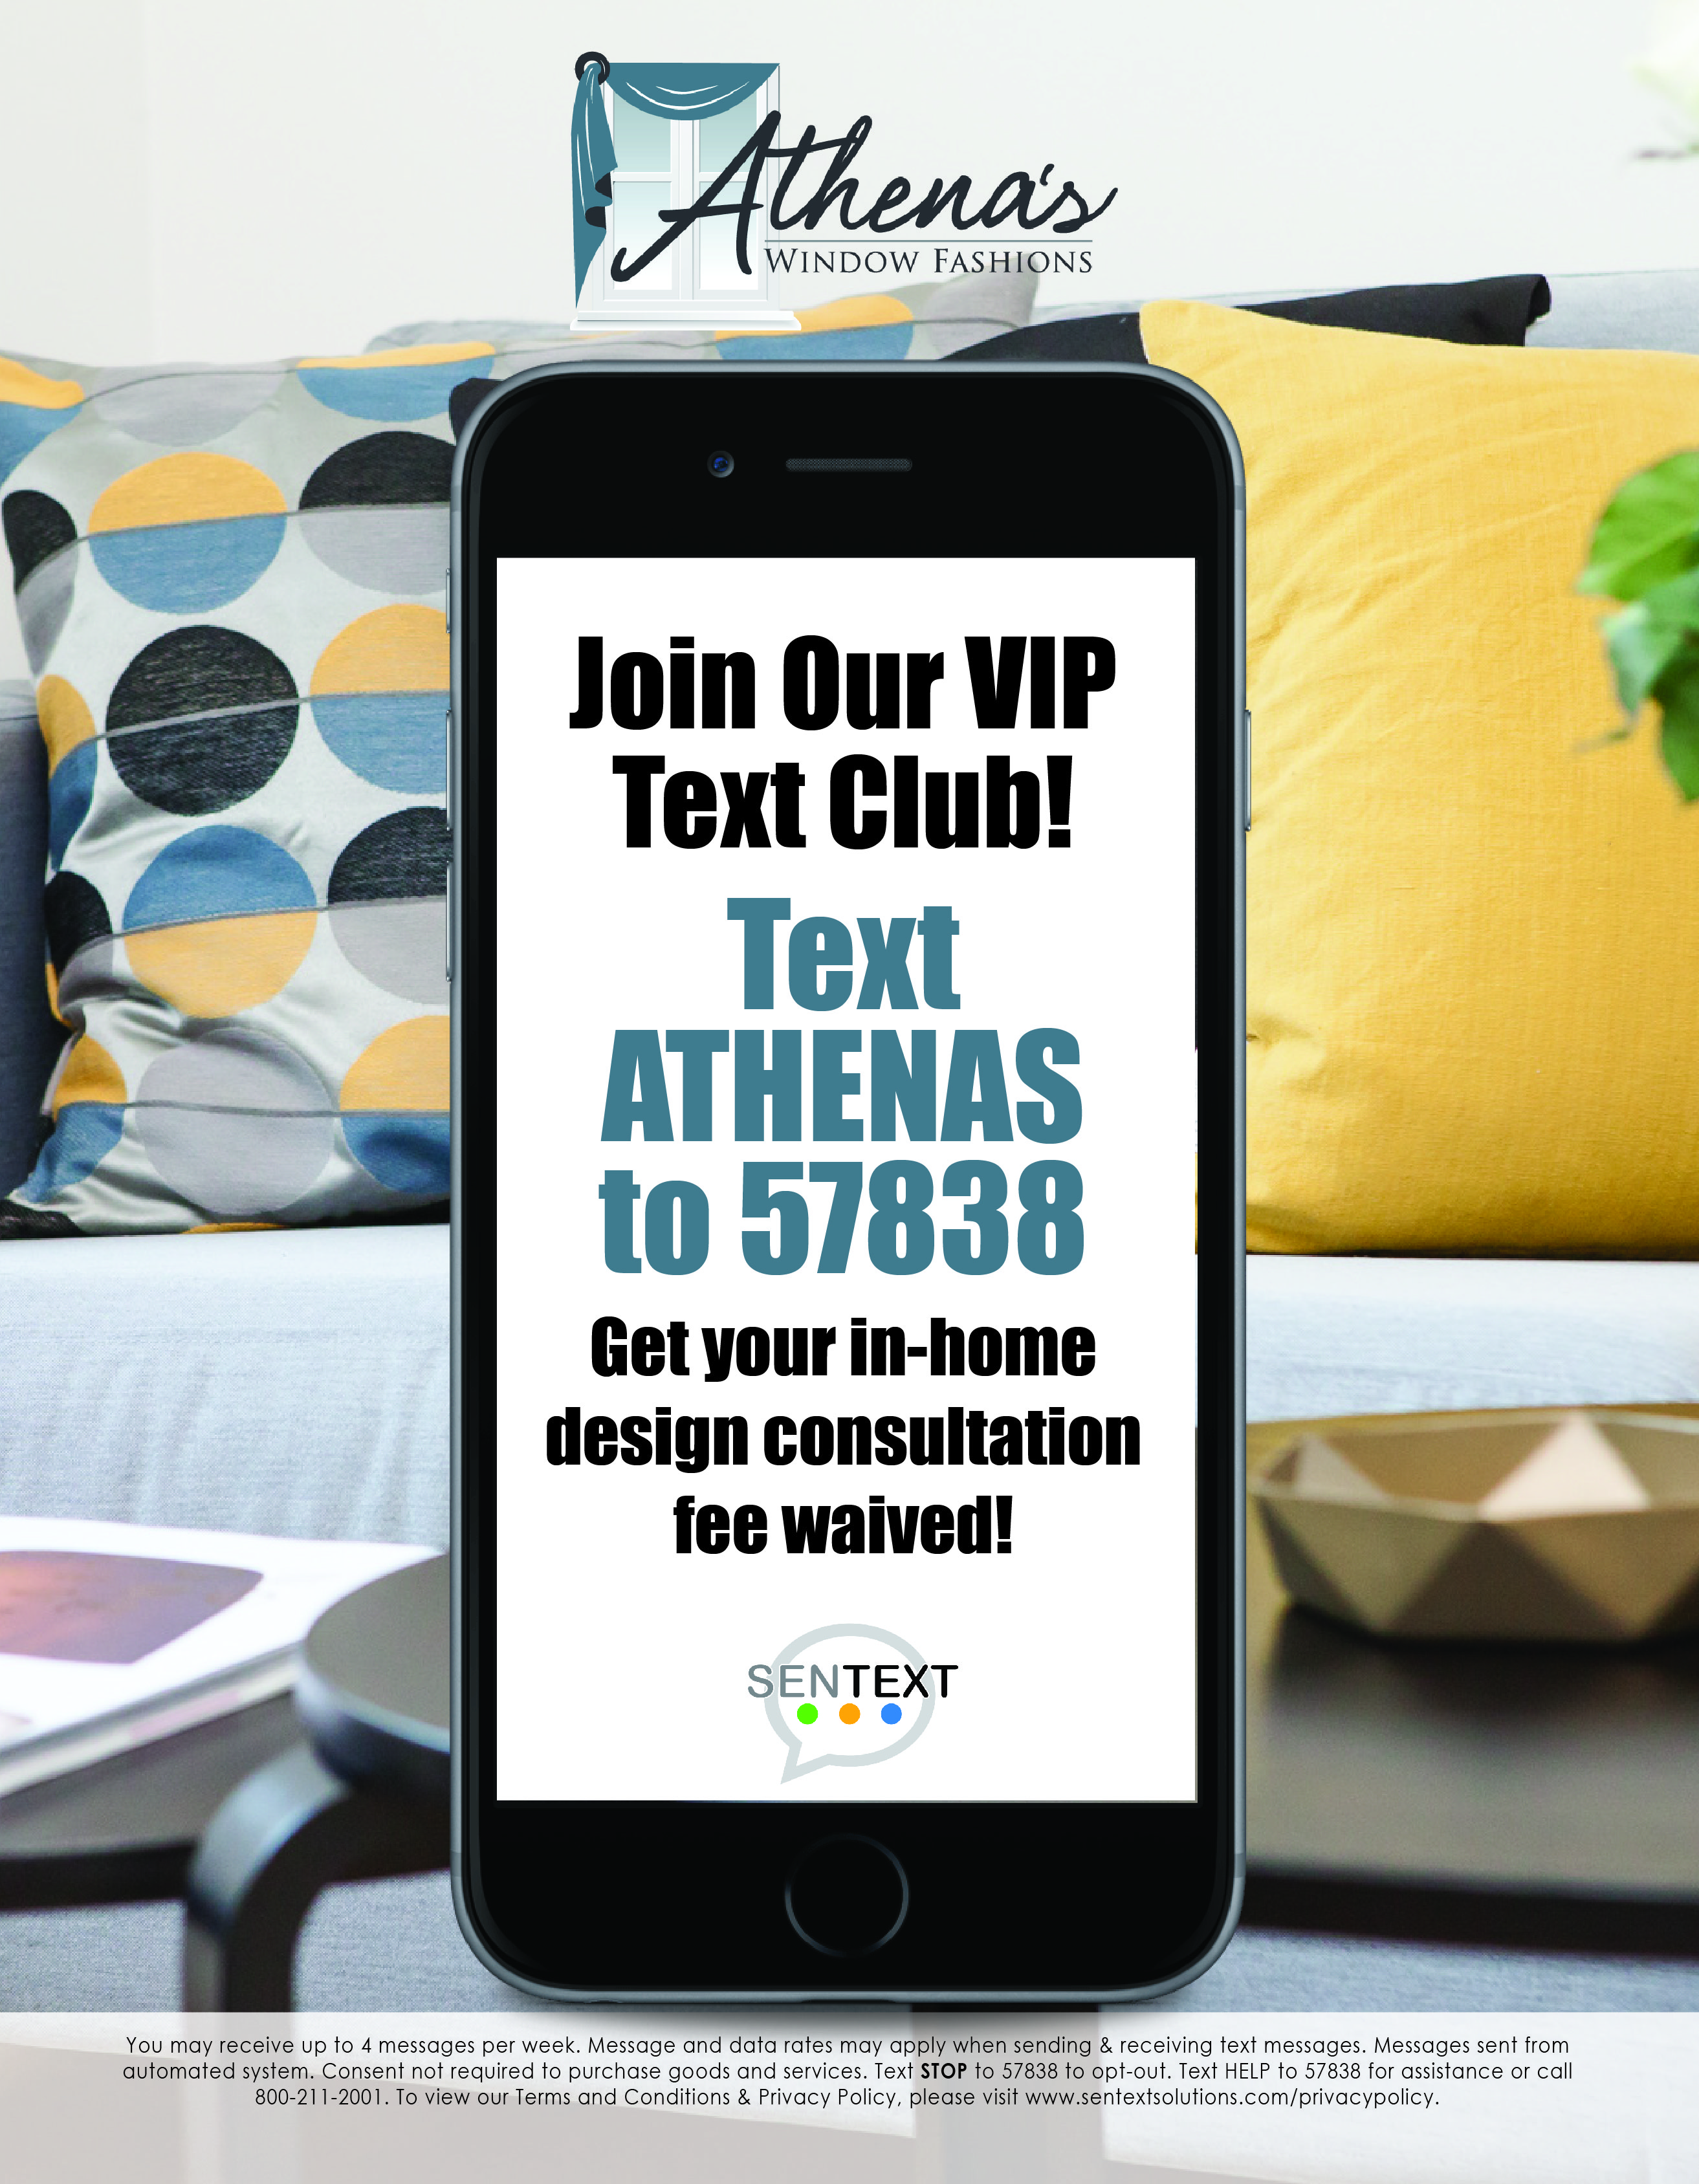 Advert to join Athena's VIP text club